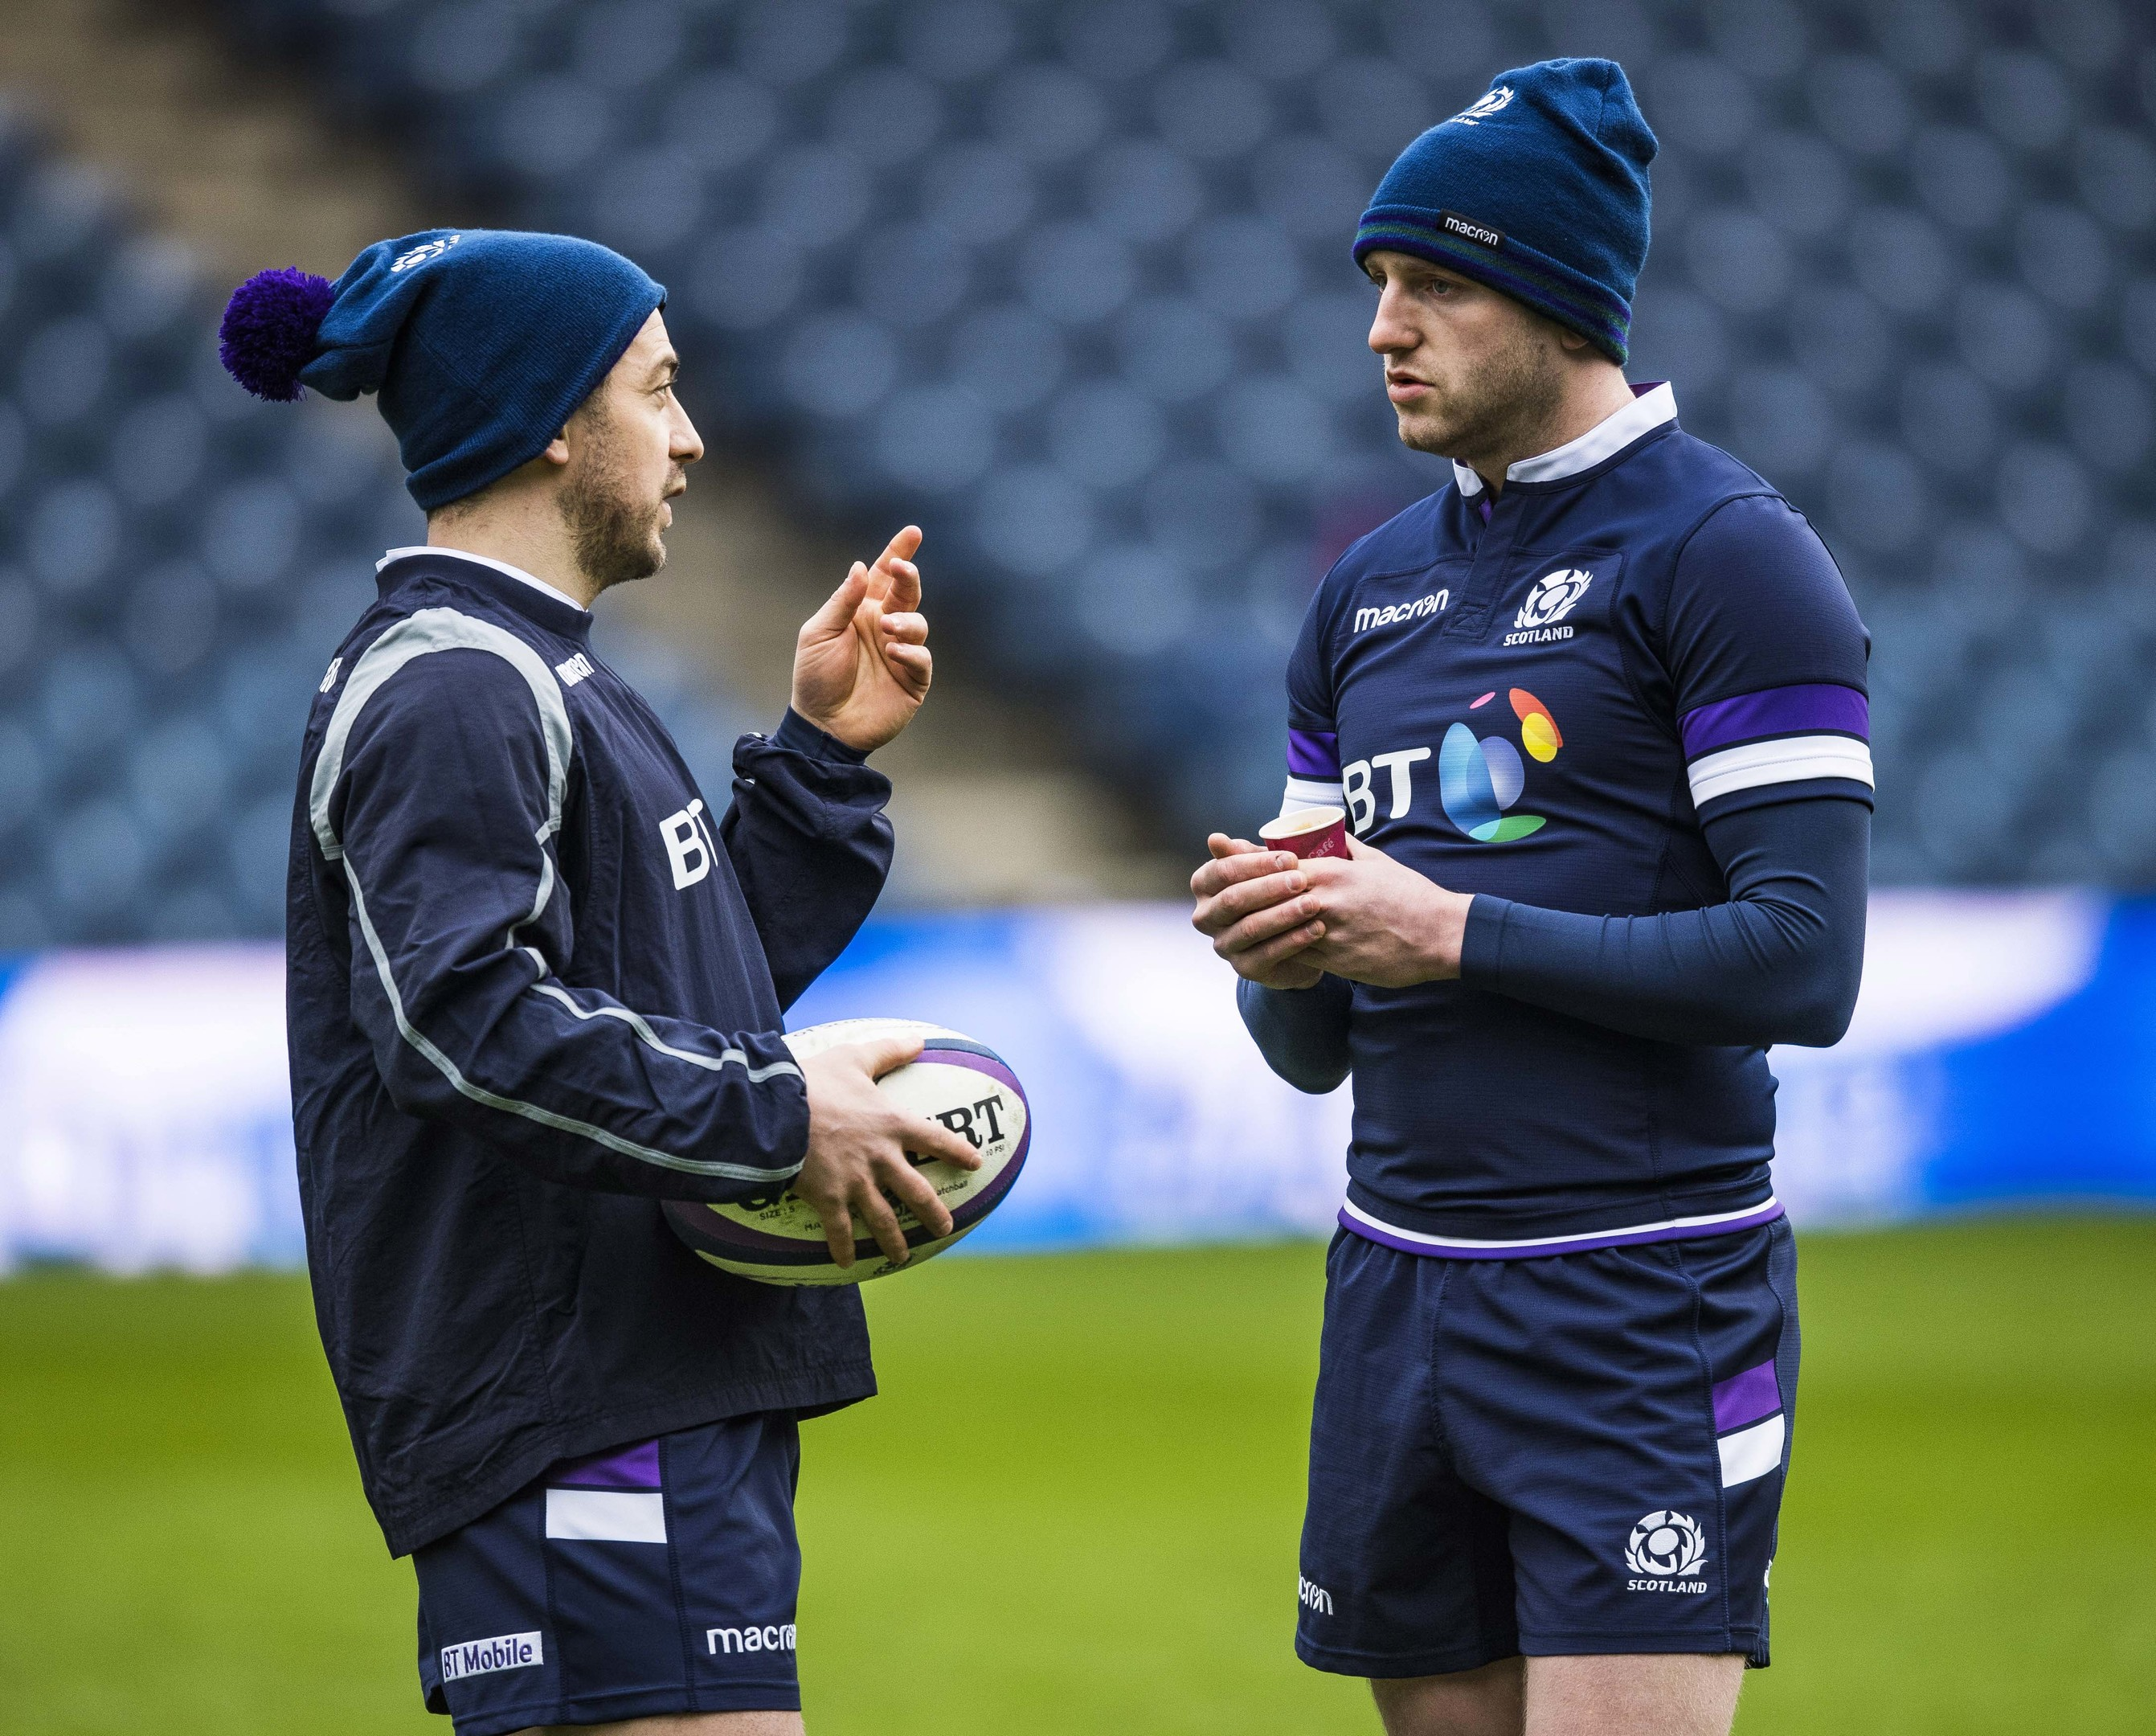 Greig Laidlaw has faith in Finn Russell's ability to crack open Ireland's defence.